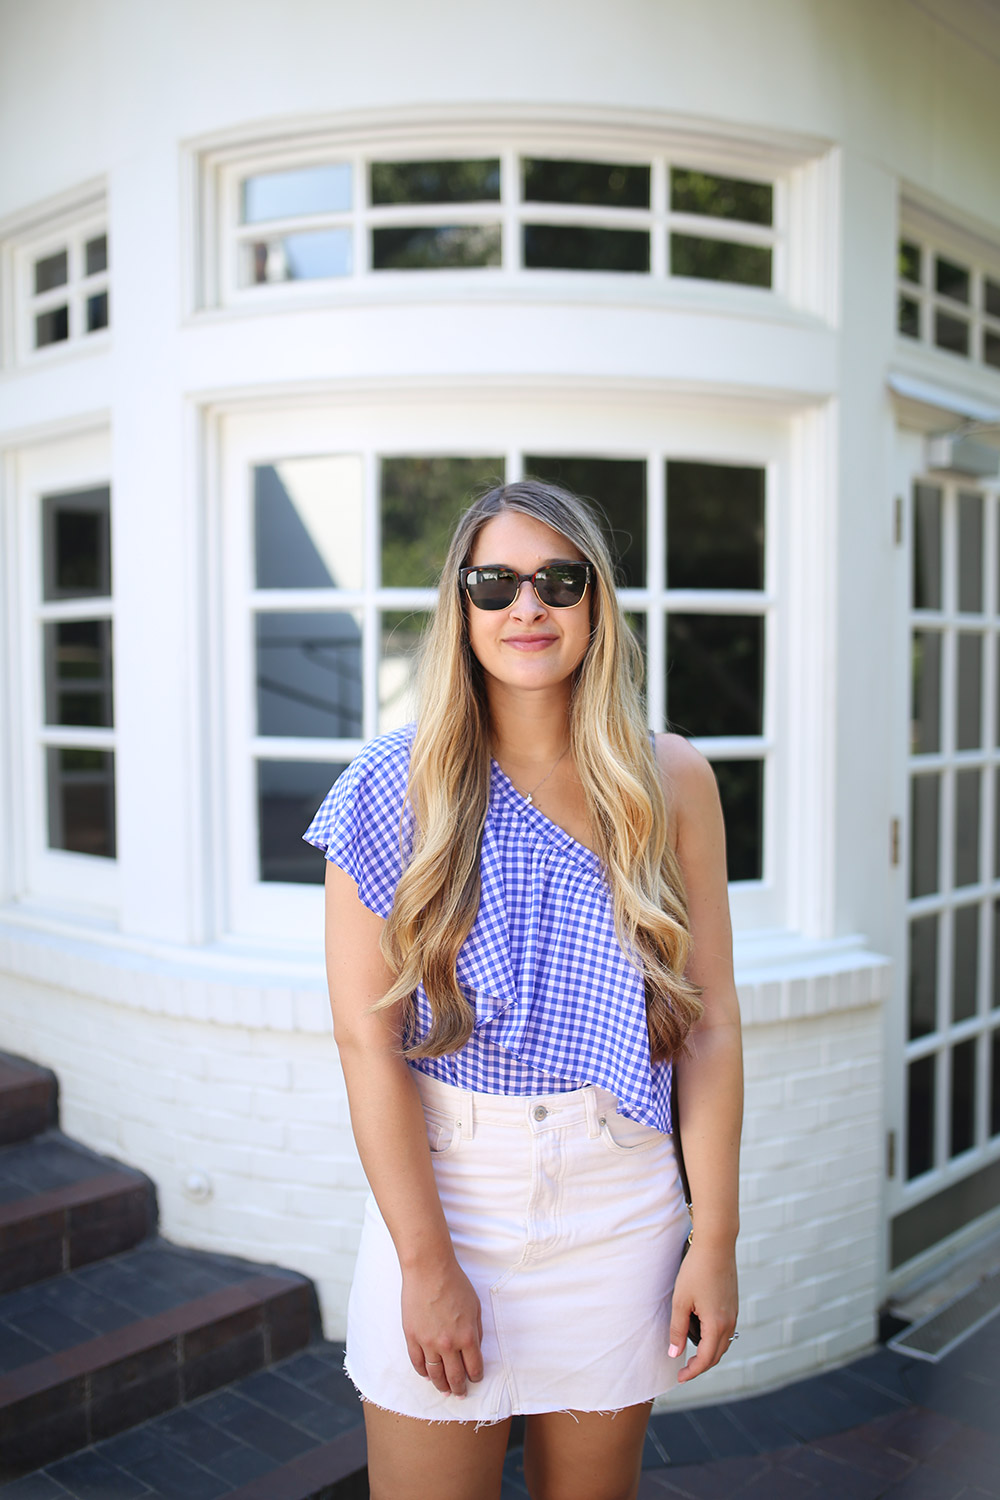 One-Shoulder Gingham Top and White Denim _ Easy summer style _ Simple summer outfit idea _ Affordable summer outfit inspiration from Nordstrom _ Dallas fashion bloggers